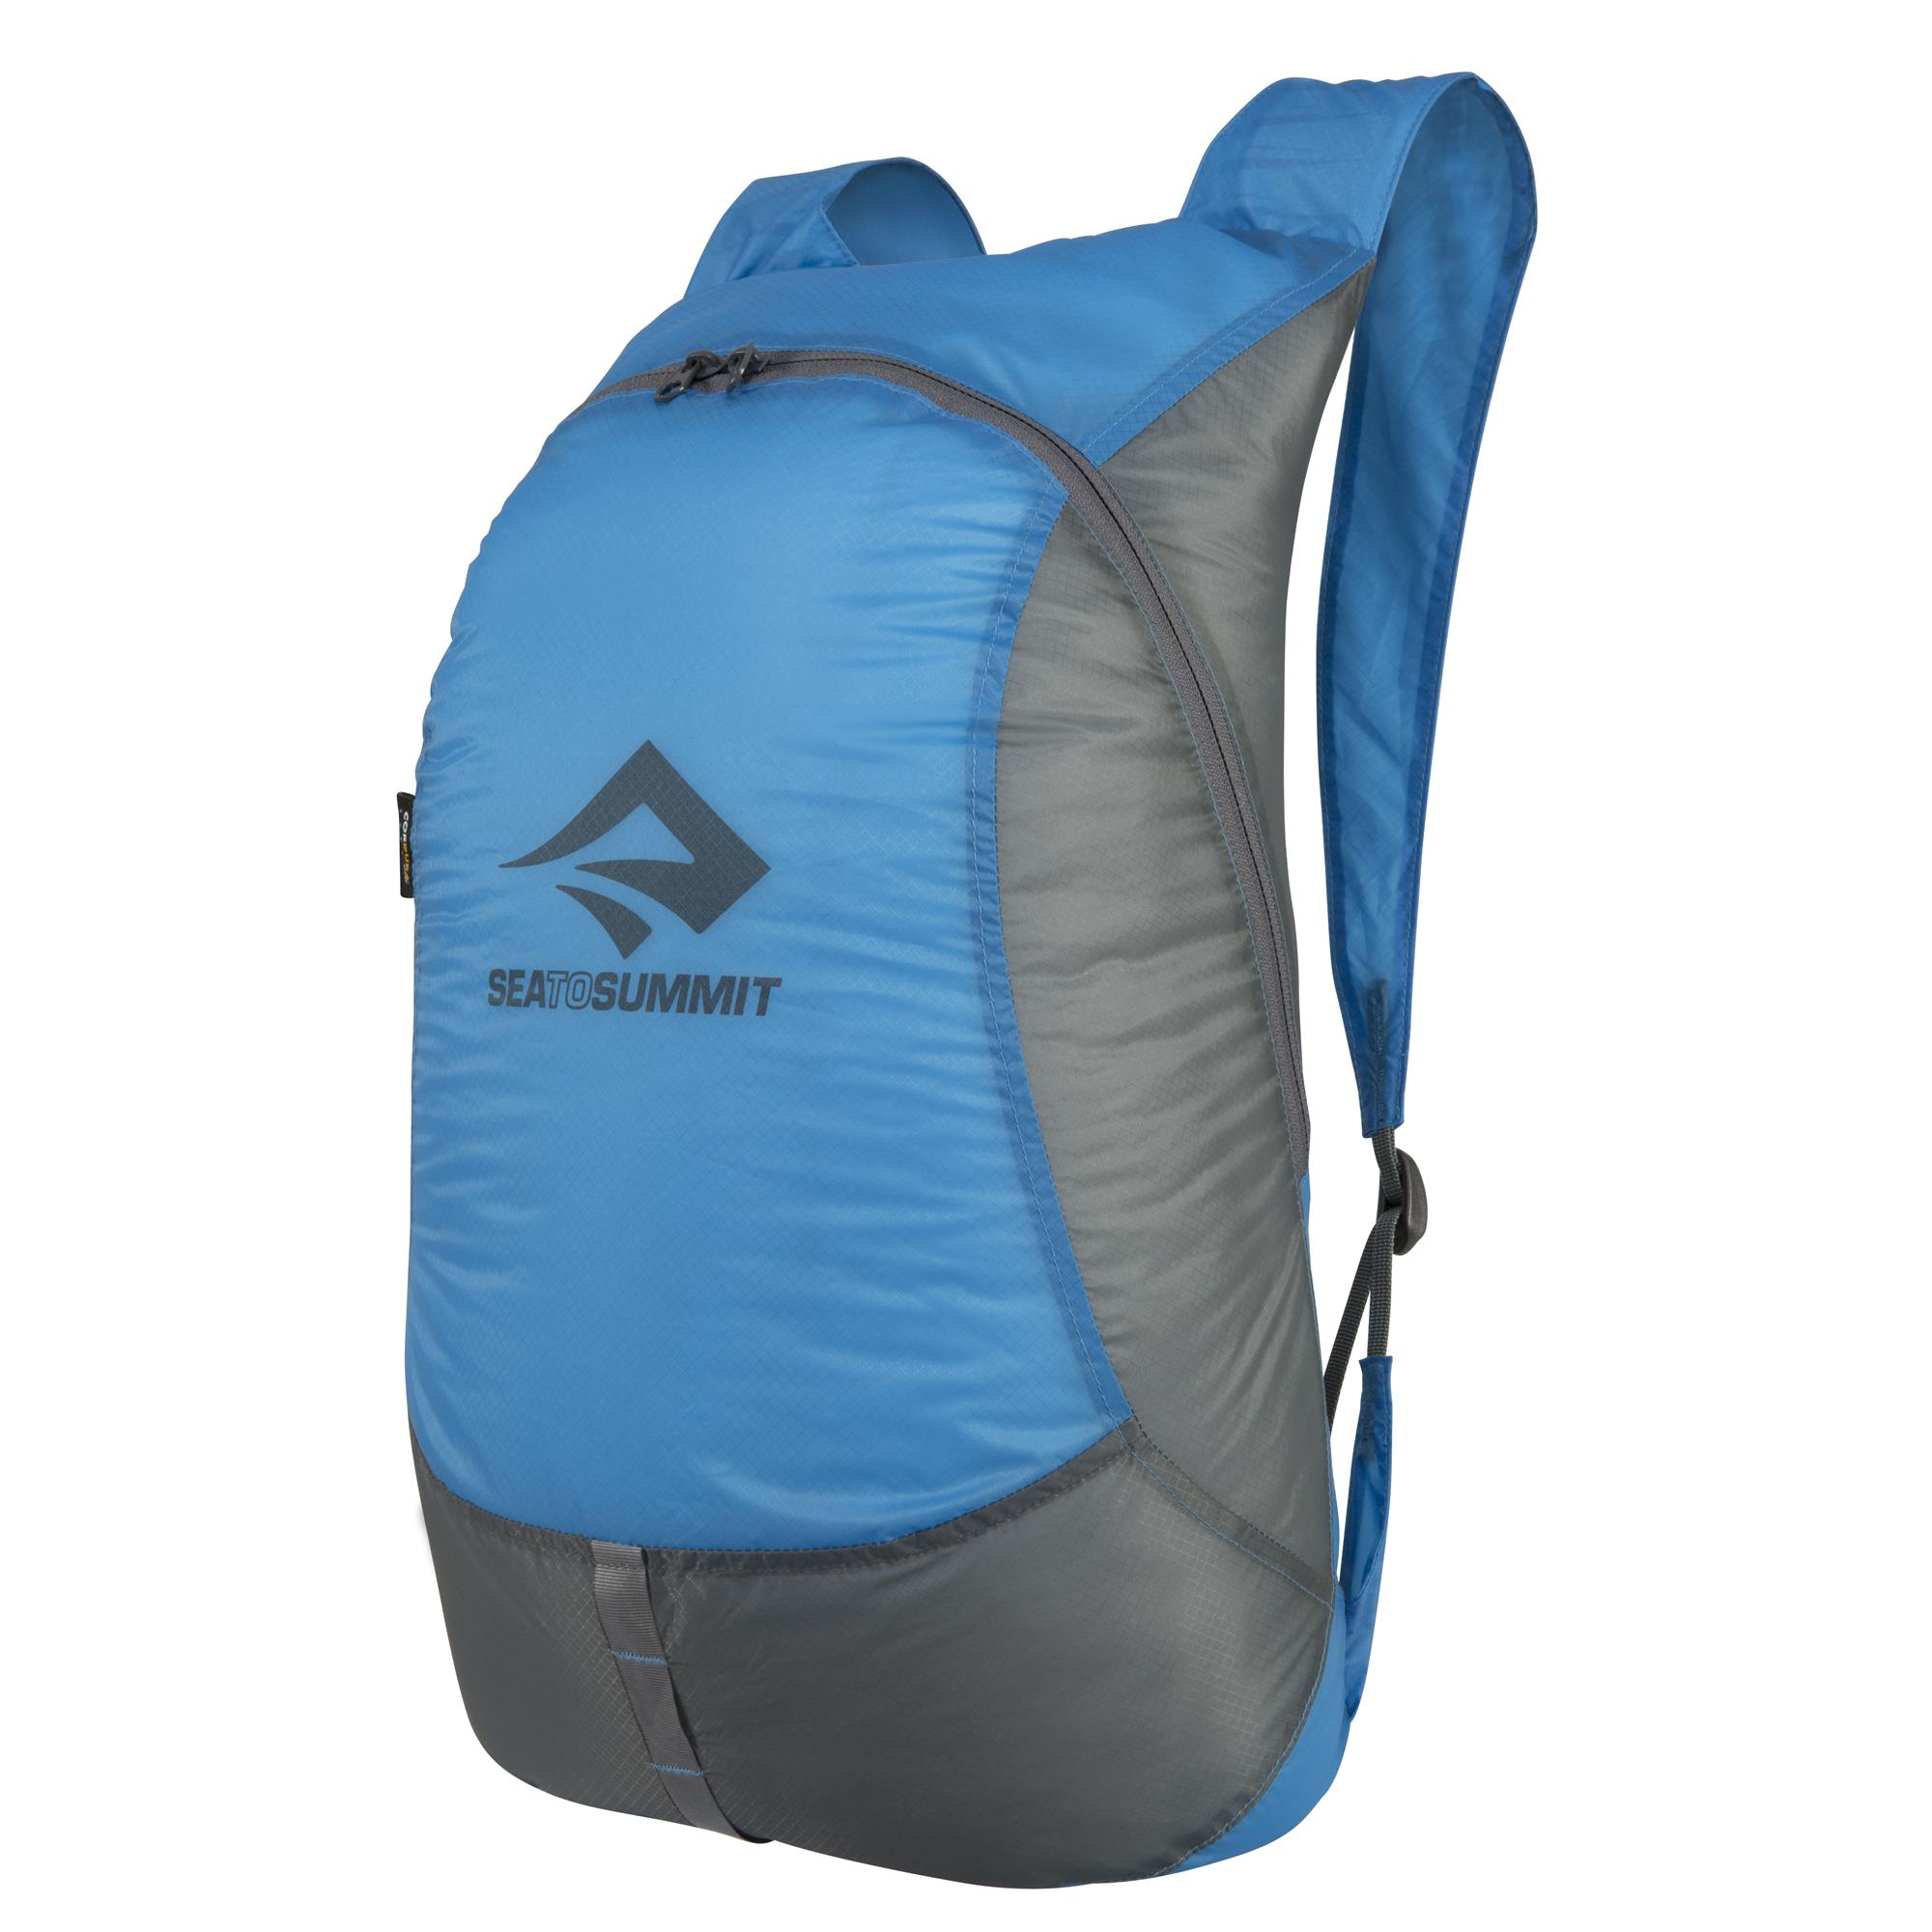 sea to summit Ultra-Sil Daypack Tagesrucksack blau,sky blue